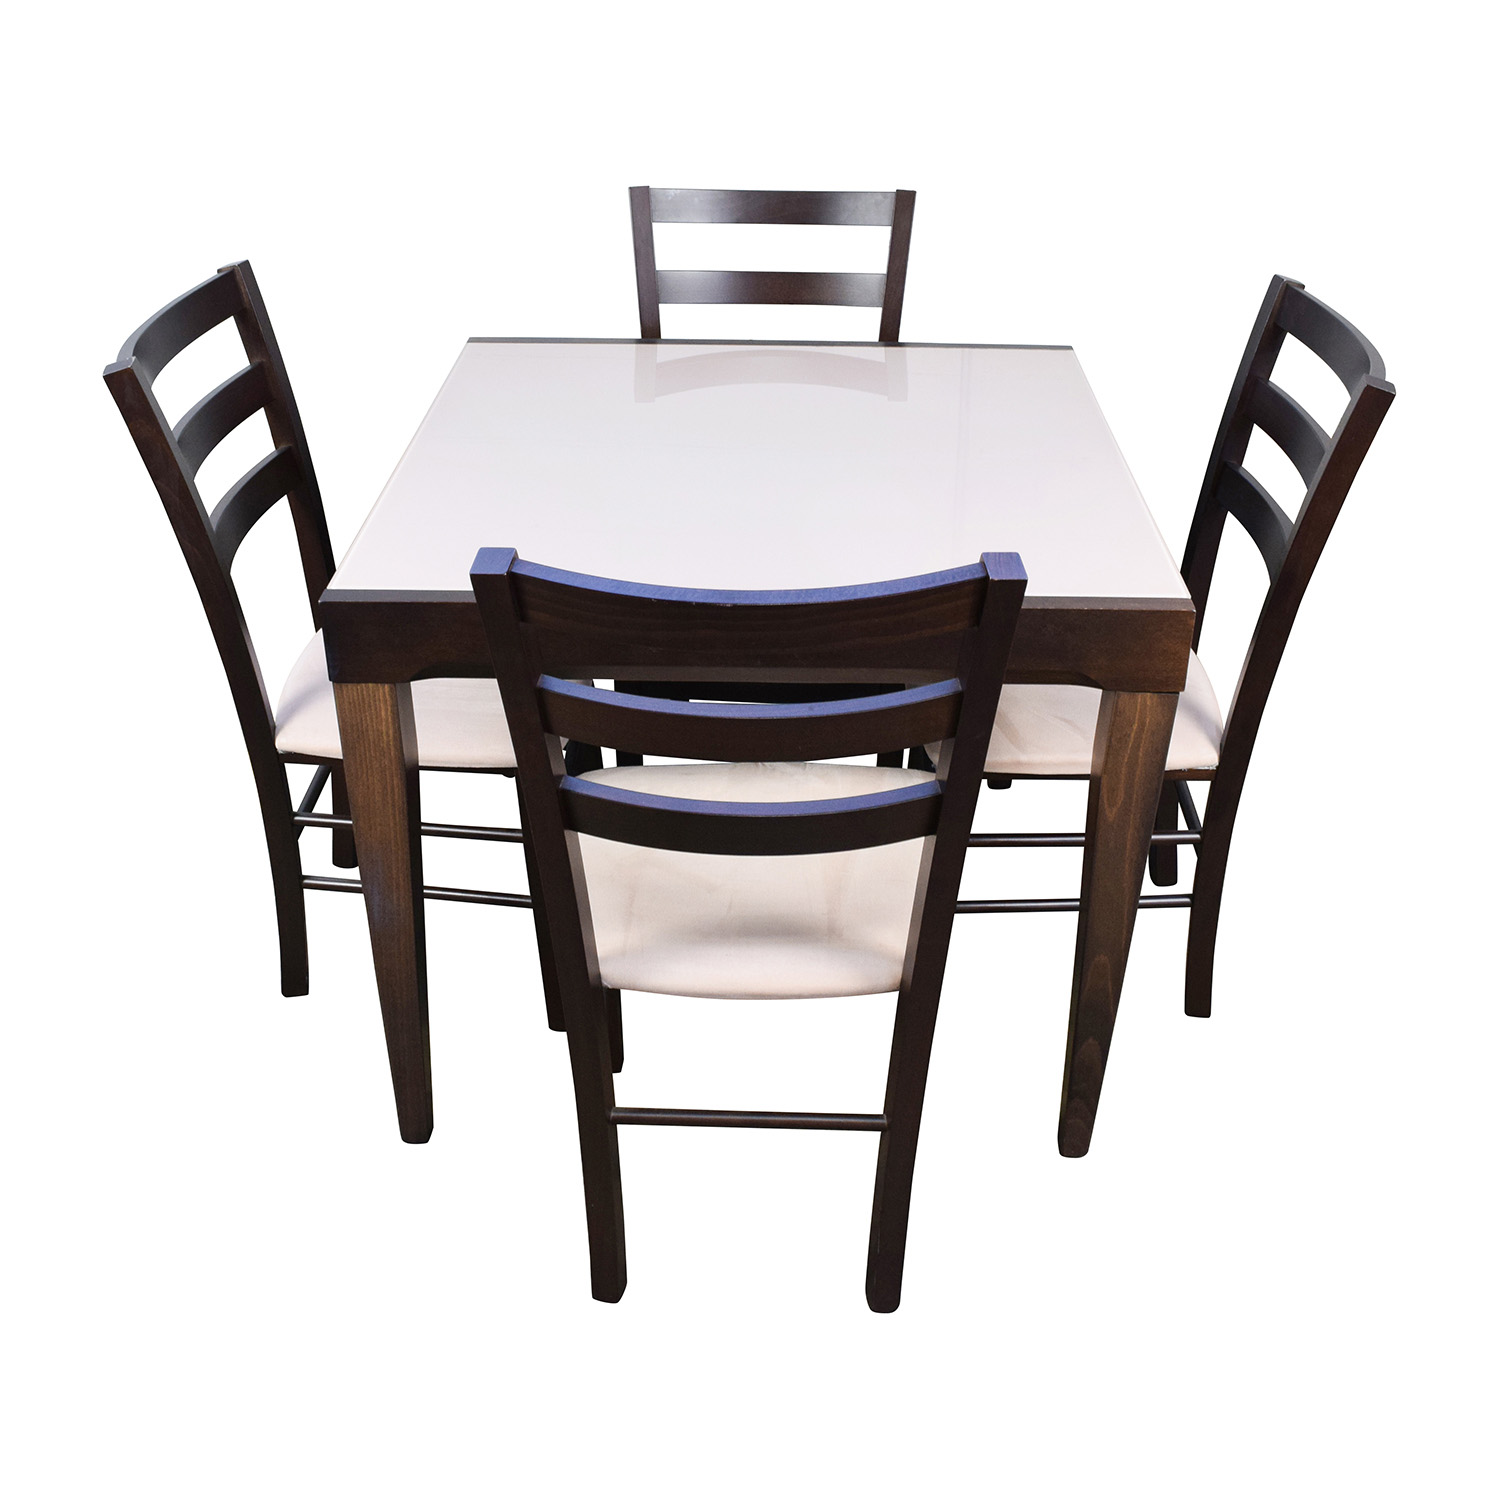 Gentil ... Macys Cafe Latte Five Piece Extendable Dining Set / Tables ...